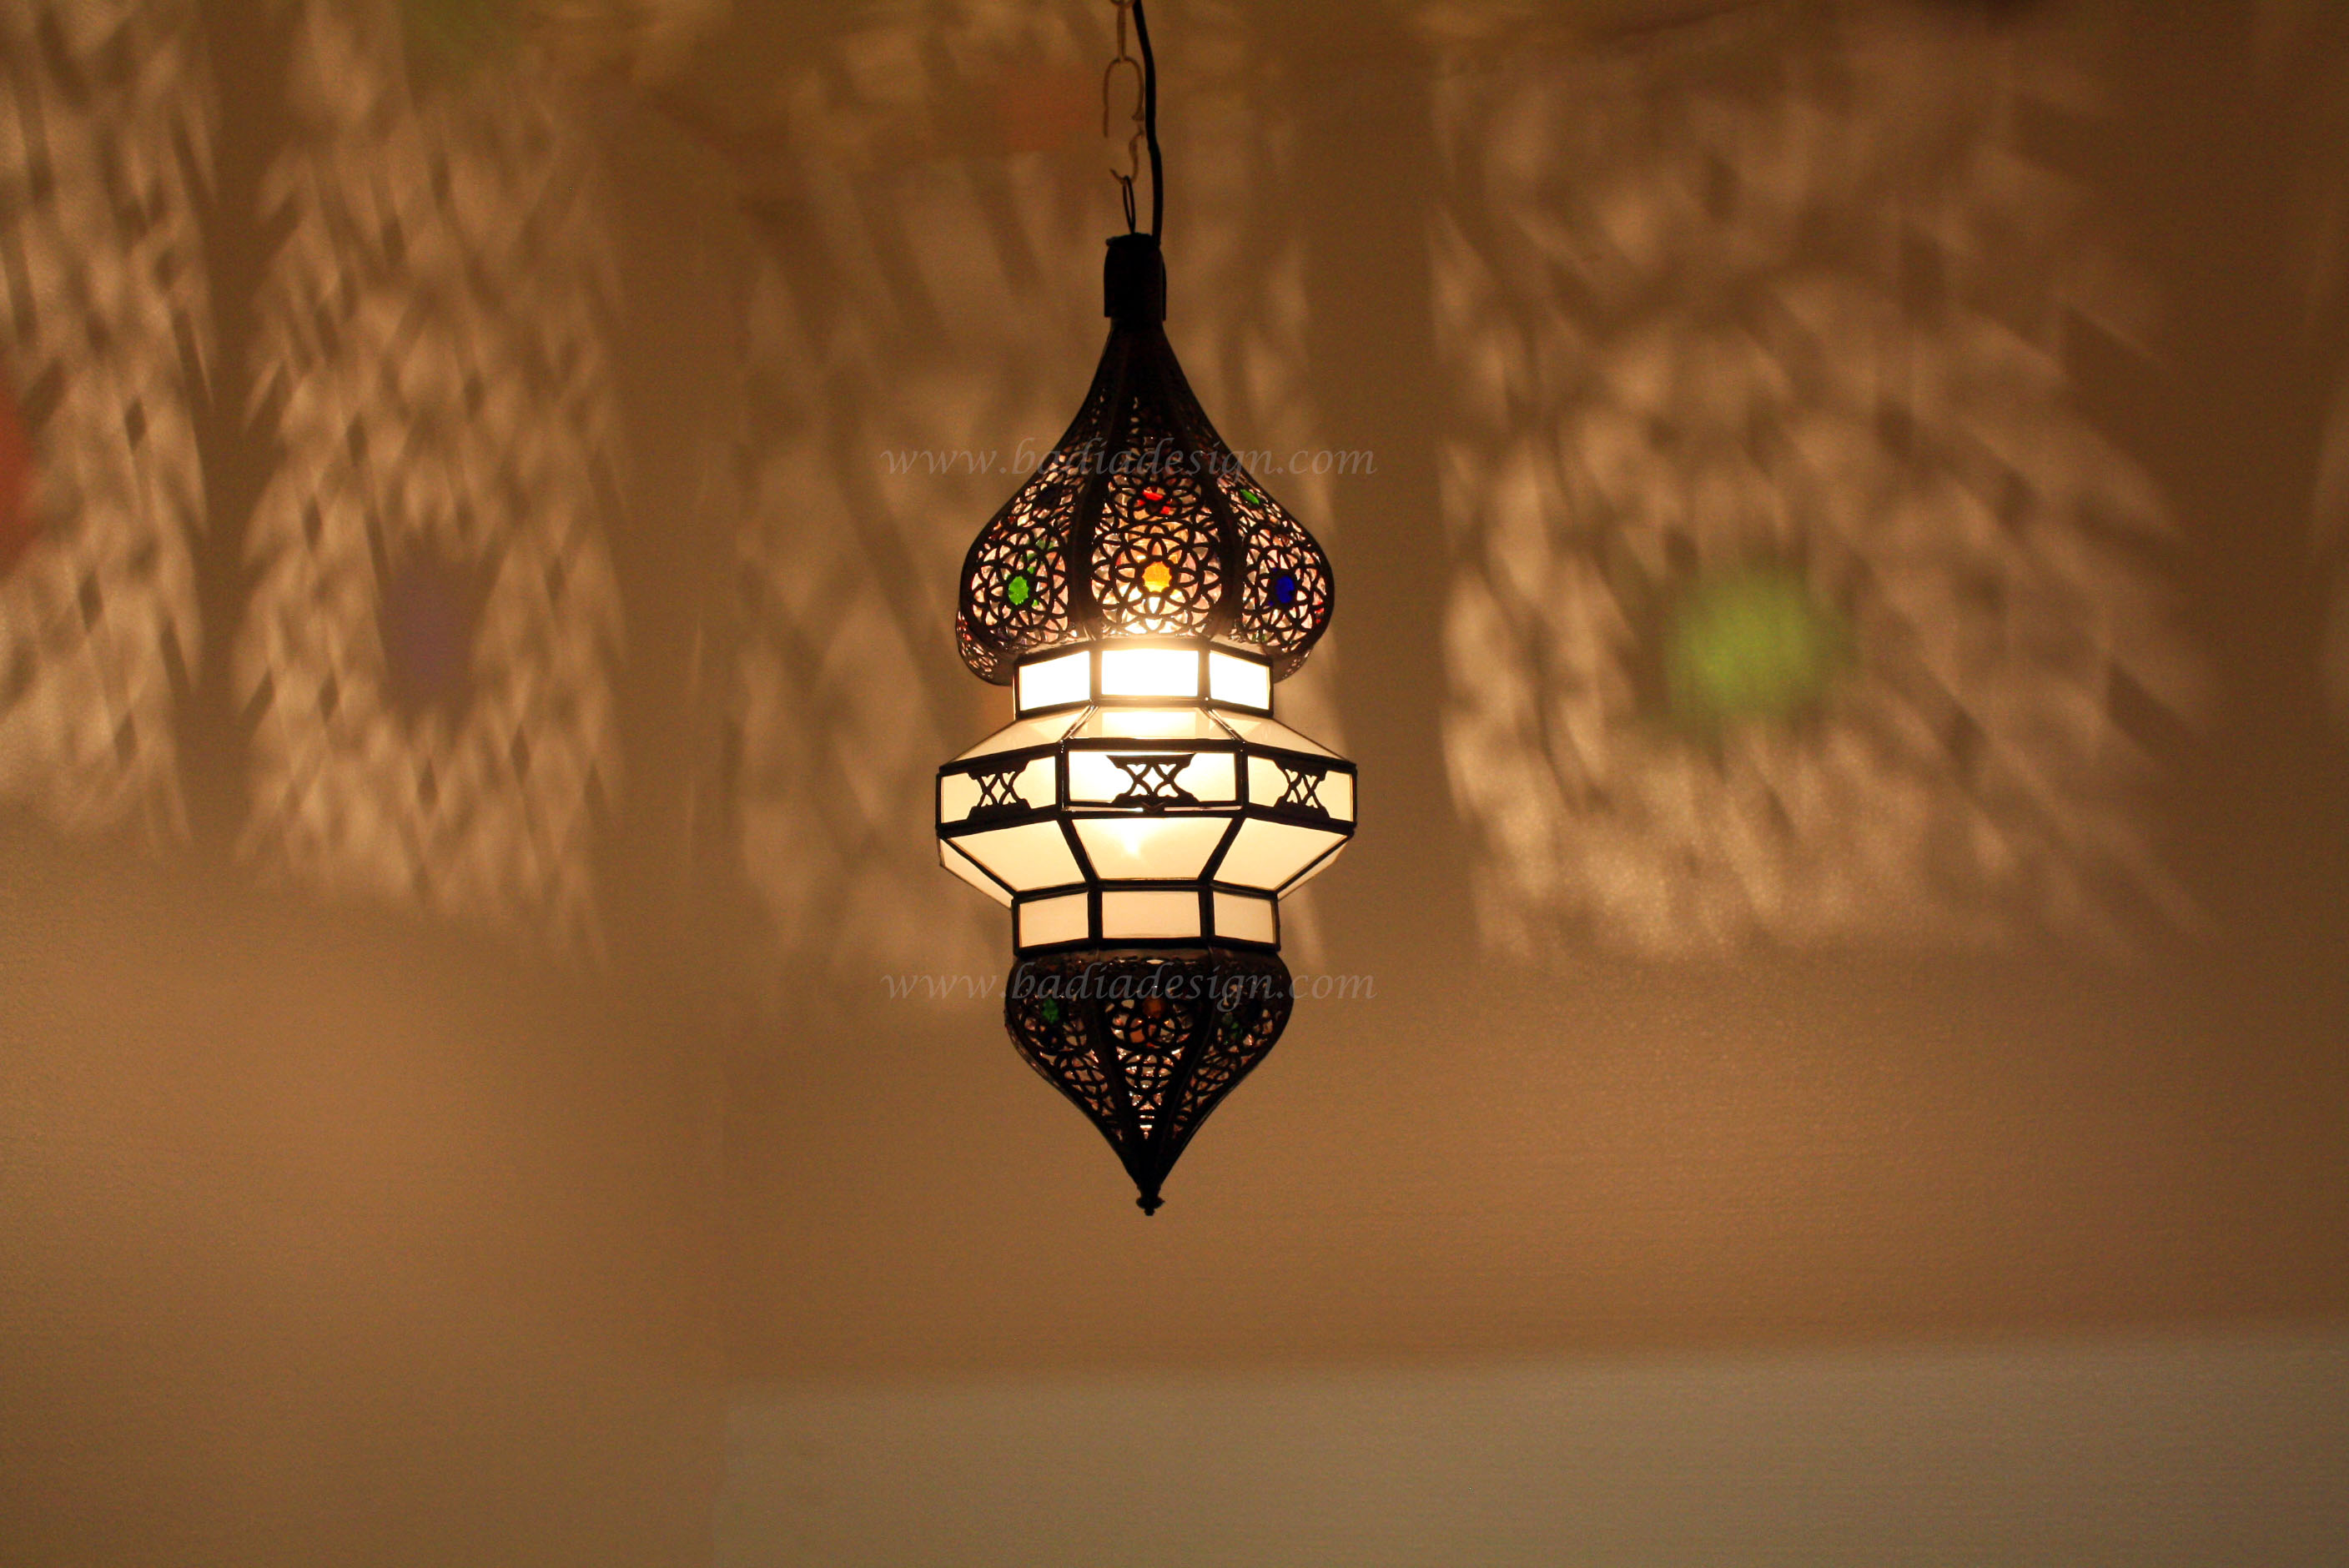 moroccan-lighting-omaha-nebraska.jpg